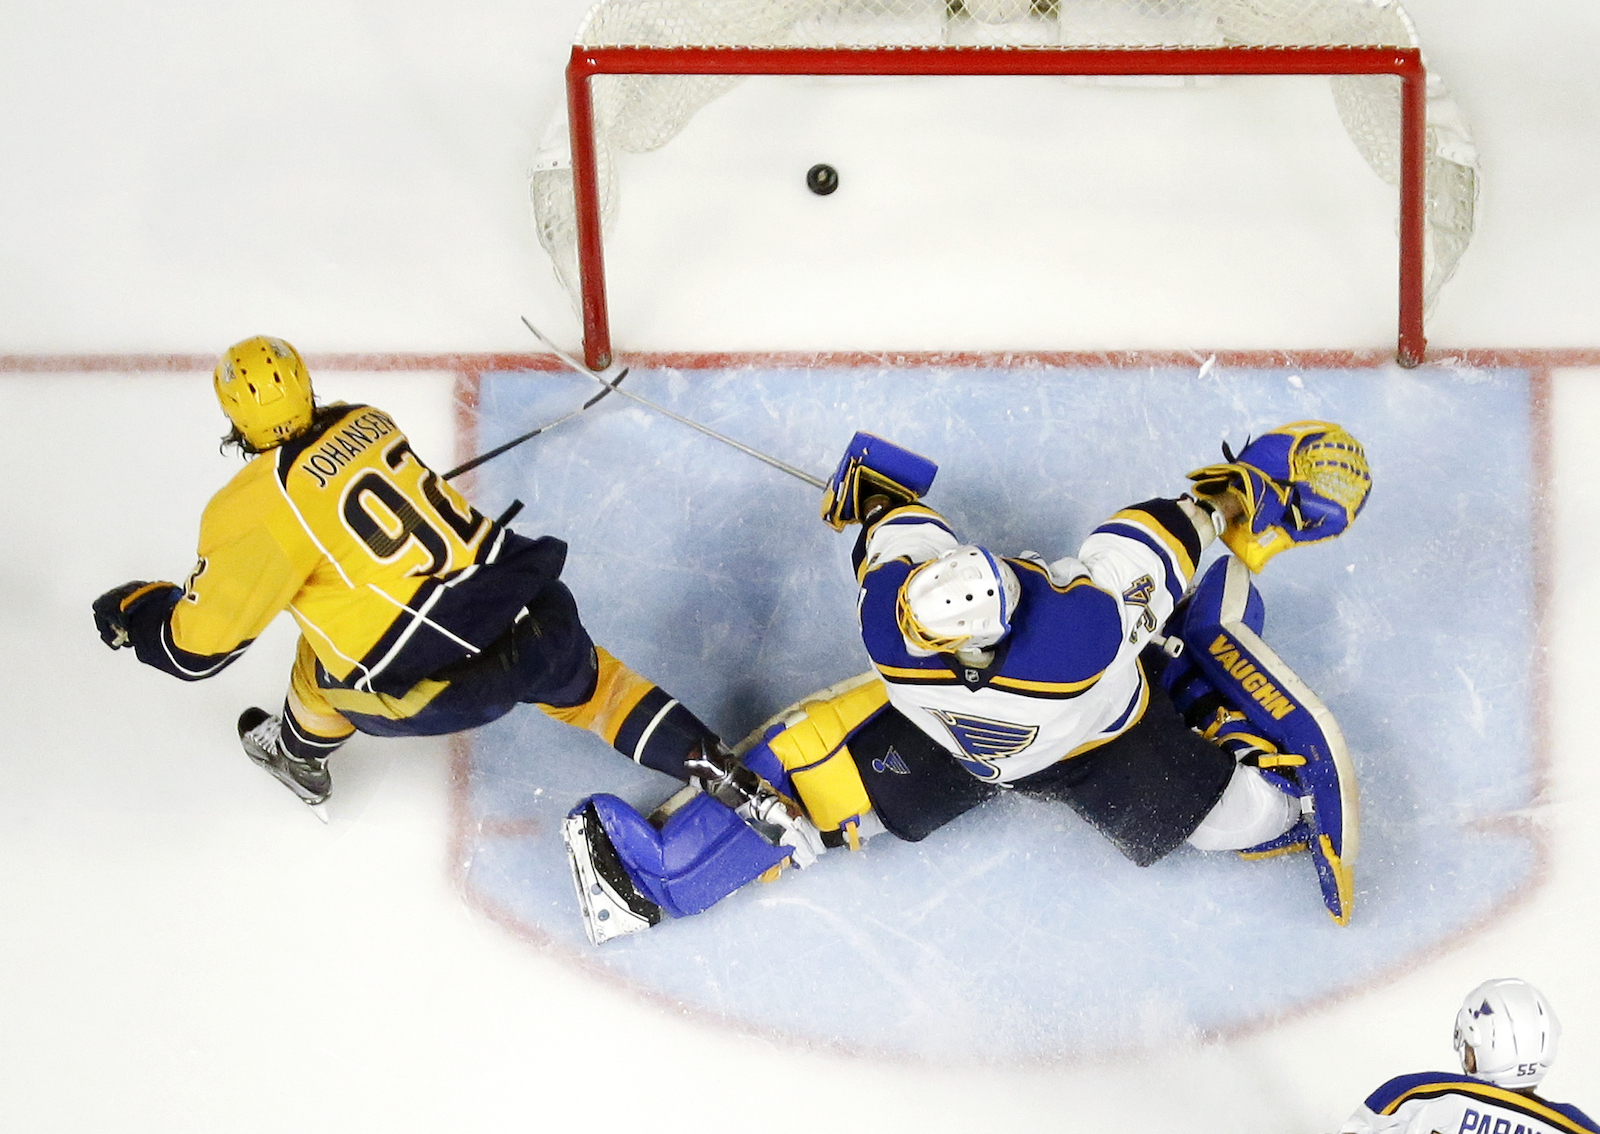 Nashville Predators center Ryan Johansen (92) scores the winning goal against St. Louis Blues goalie Jake Allen (34) during the third period in Game 6 of a second-round NHL hockey playoff series, Sunday, May 7, 2017, in Nashville, Tenn. The Predators won 3-1 to win the series 4-2. (AP Photo/Mark Humphrey)